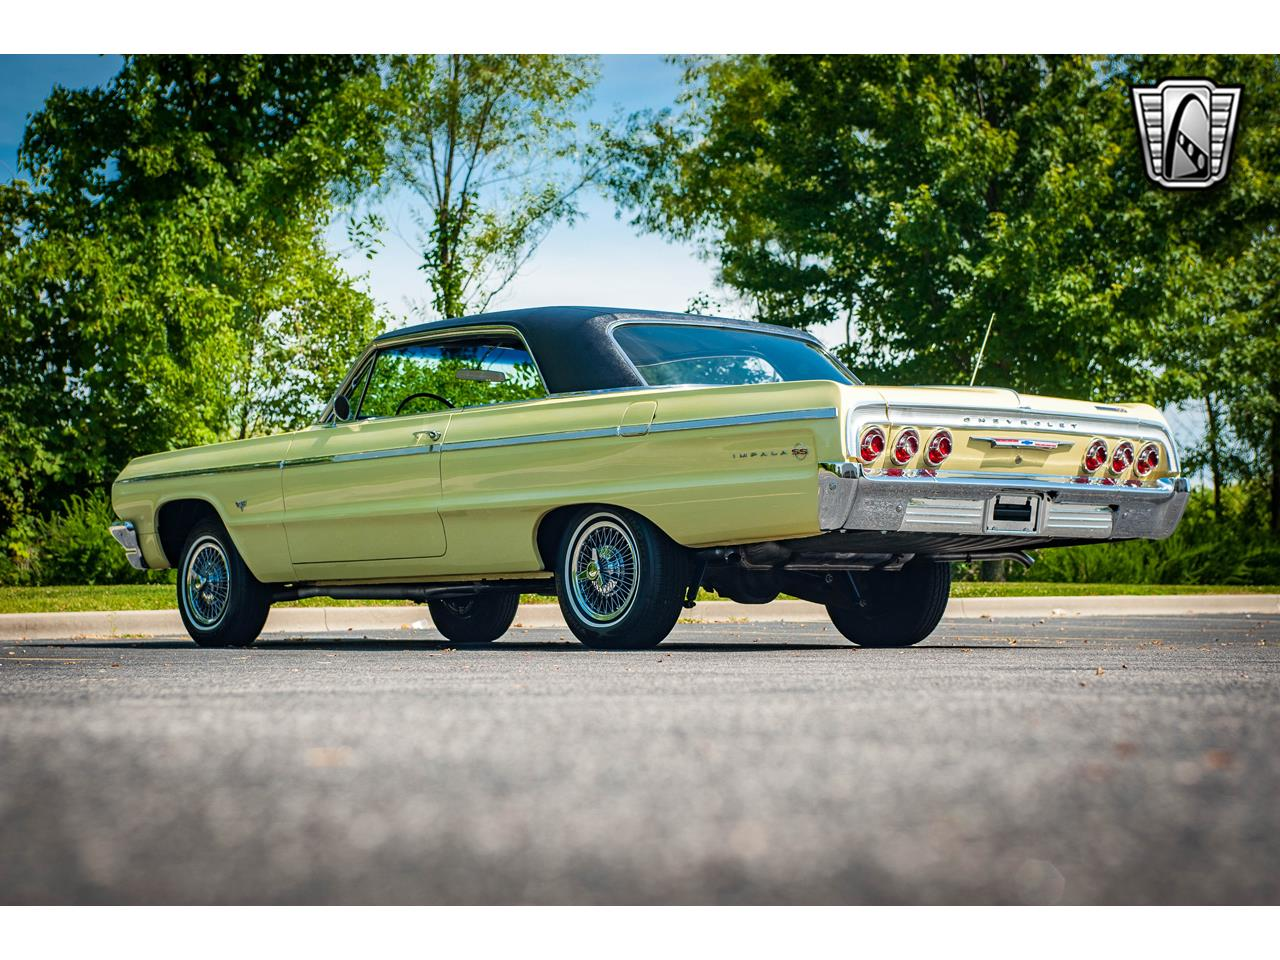 Large Picture of Classic 1964 Impala - $45,000.00 Offered by Gateway Classic Cars - St. Louis - QRDR